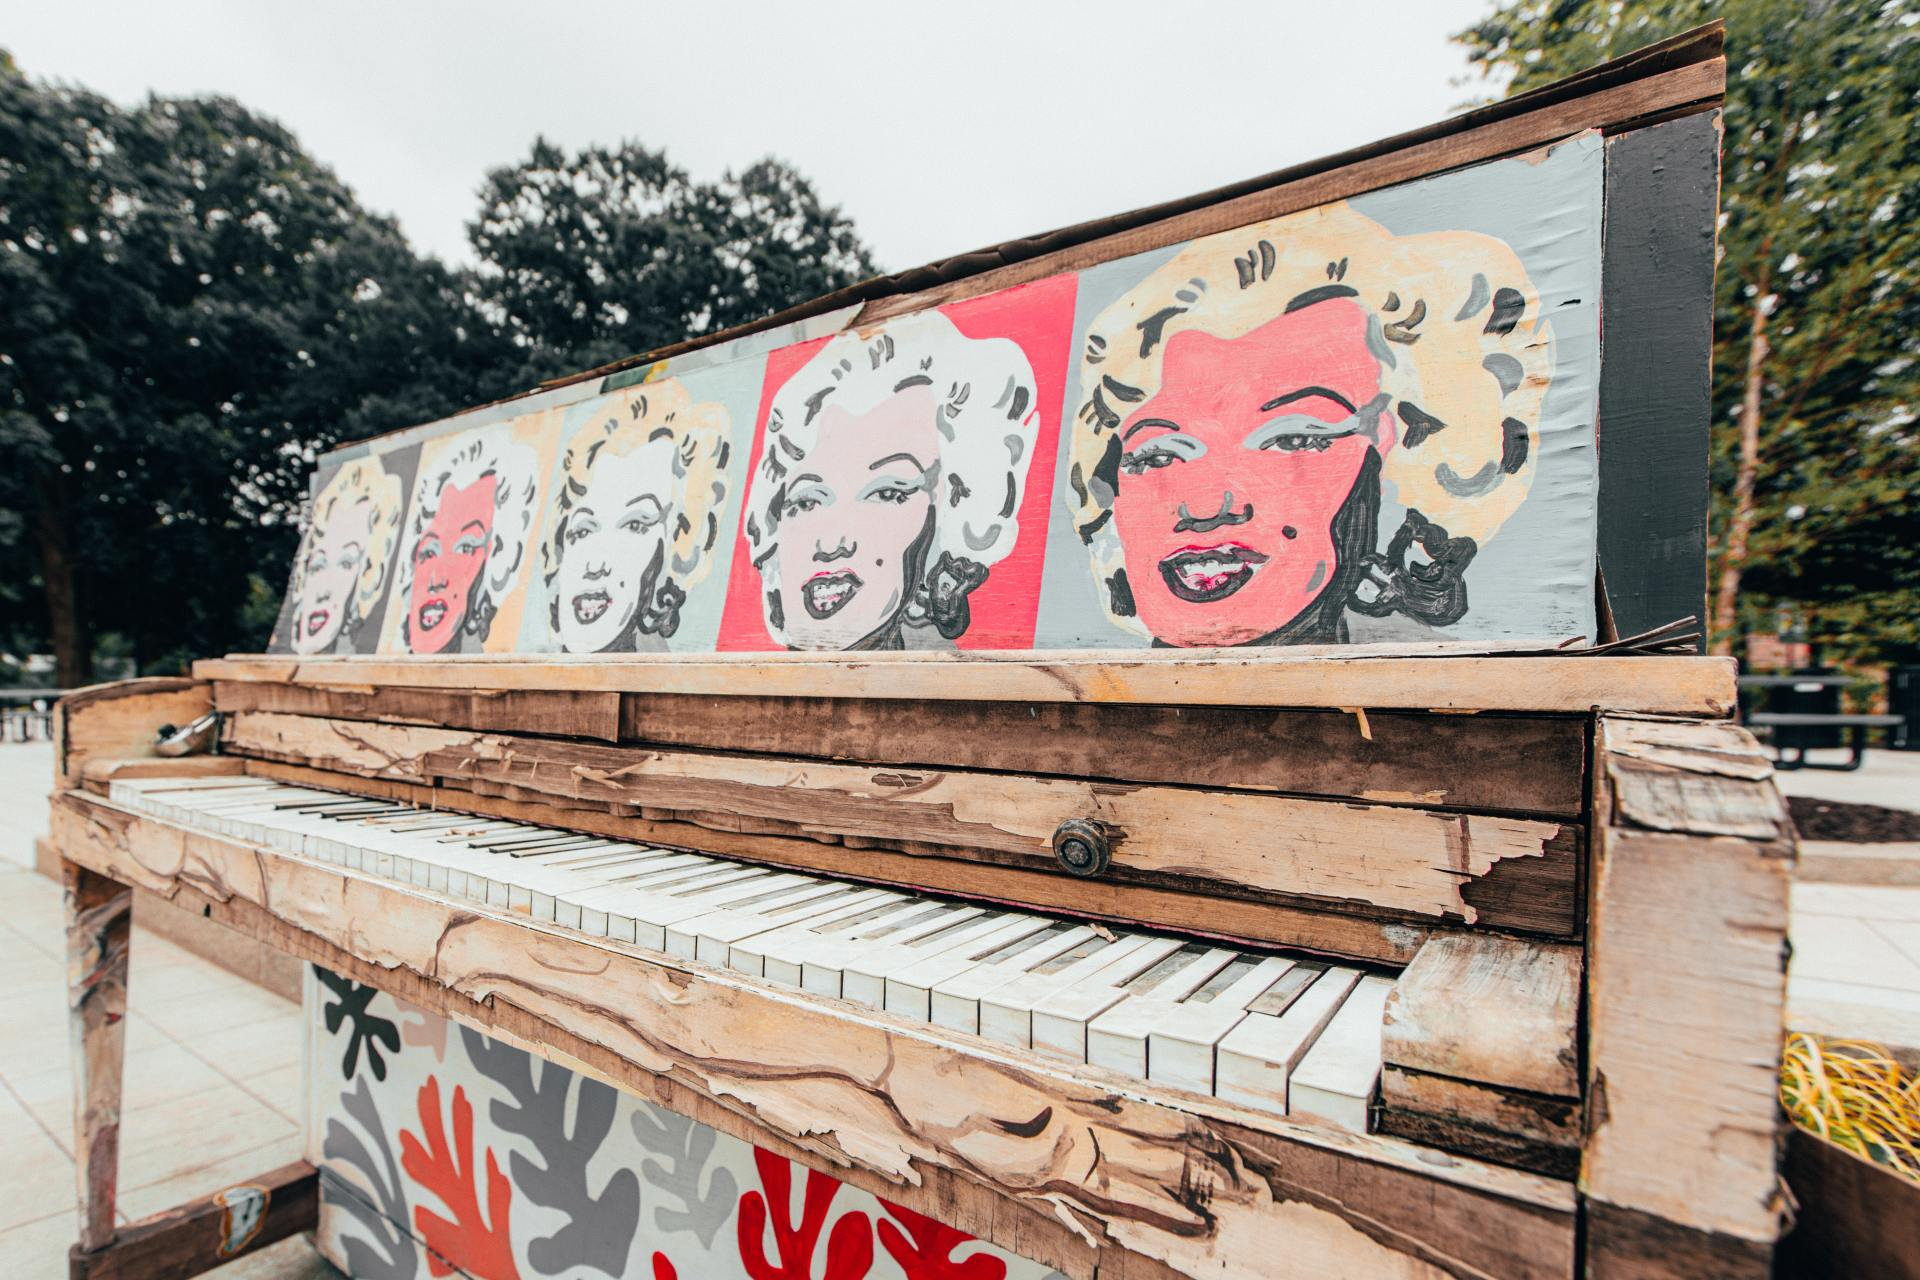 Red and white graffiti on brown wooden fence